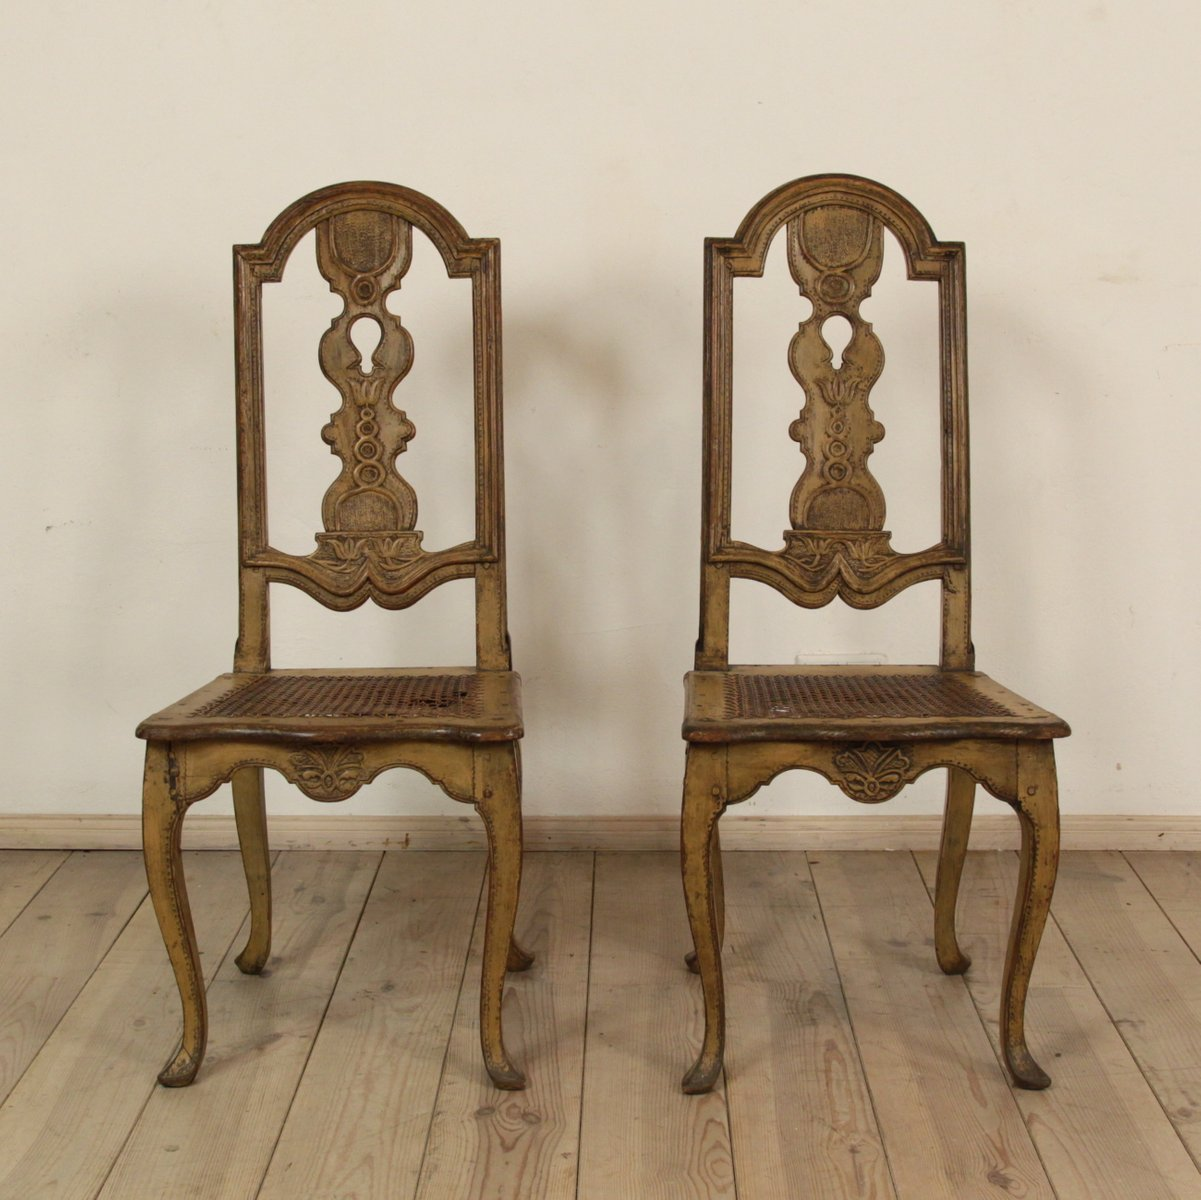 Lovely Antique Swedish Baroque Chairs, Set Of 2